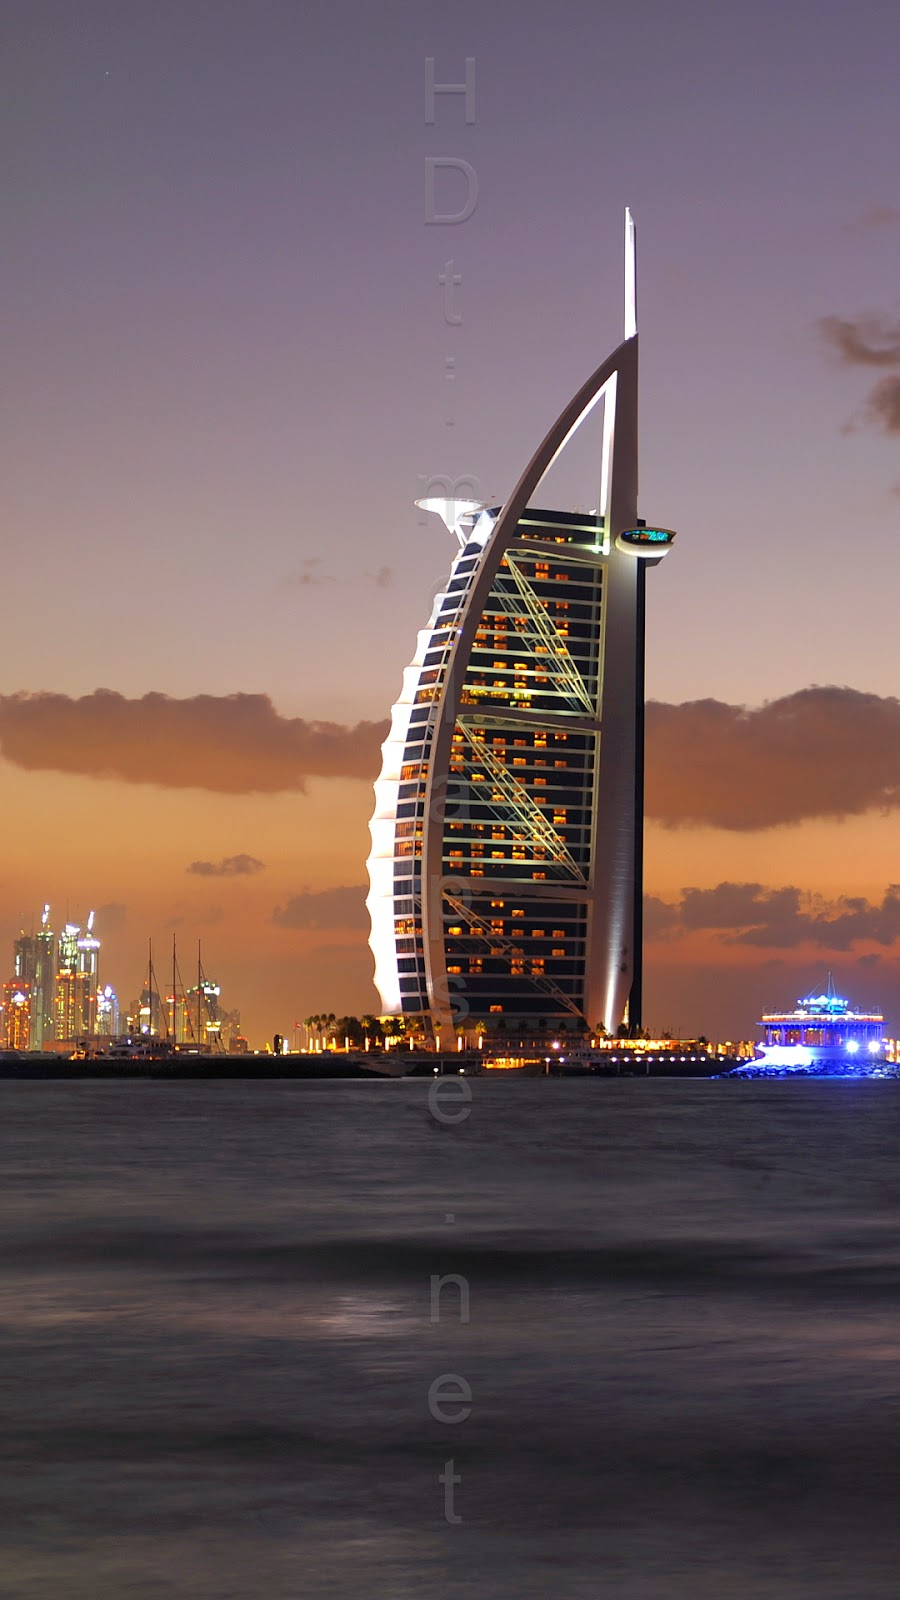 Burj al arab a seven star hotel our world stuff for Dubai 7 star hotel name